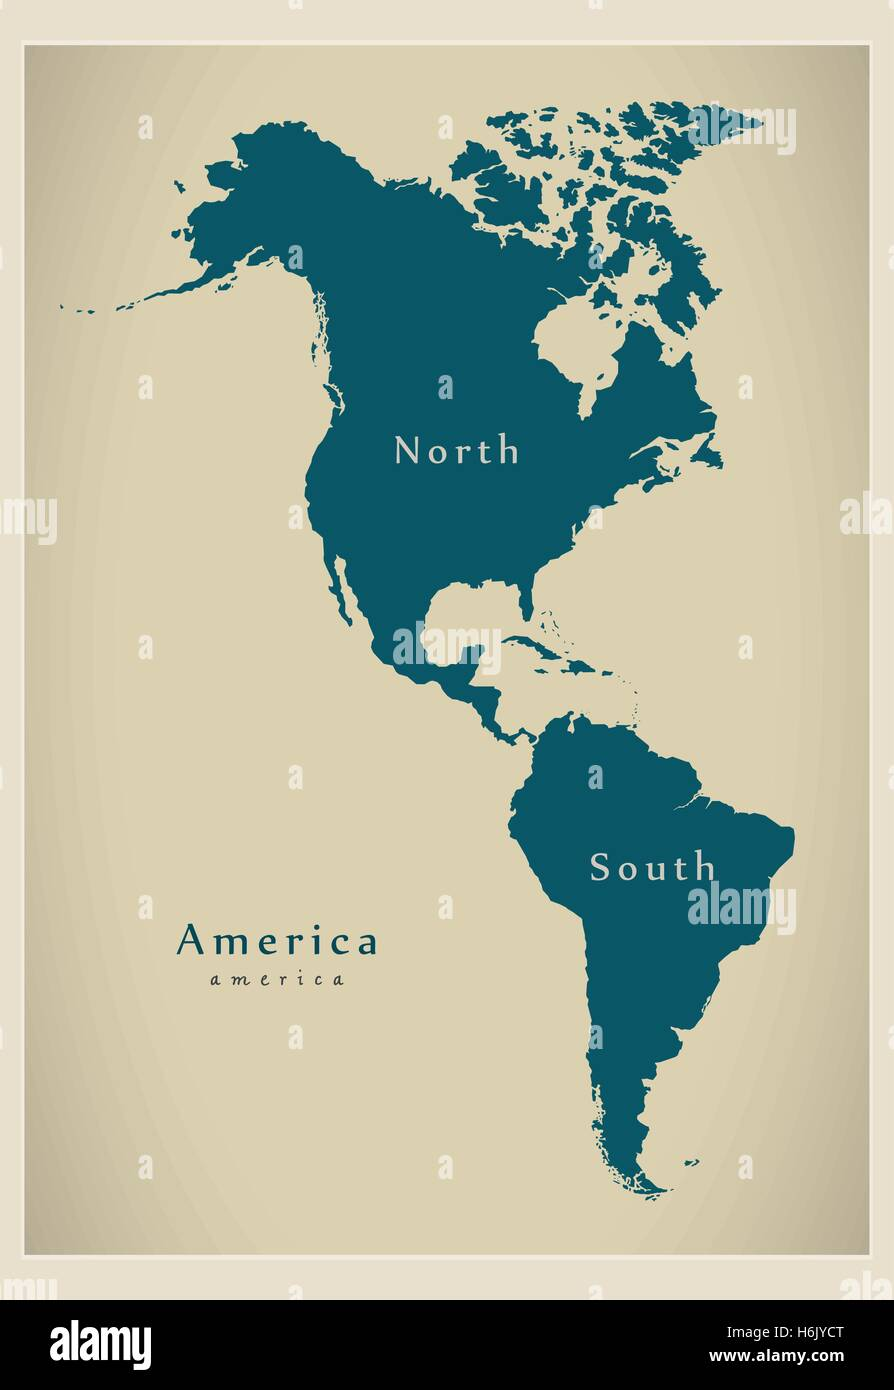 North South America Map Mexico Stock Vector Images - Alamy